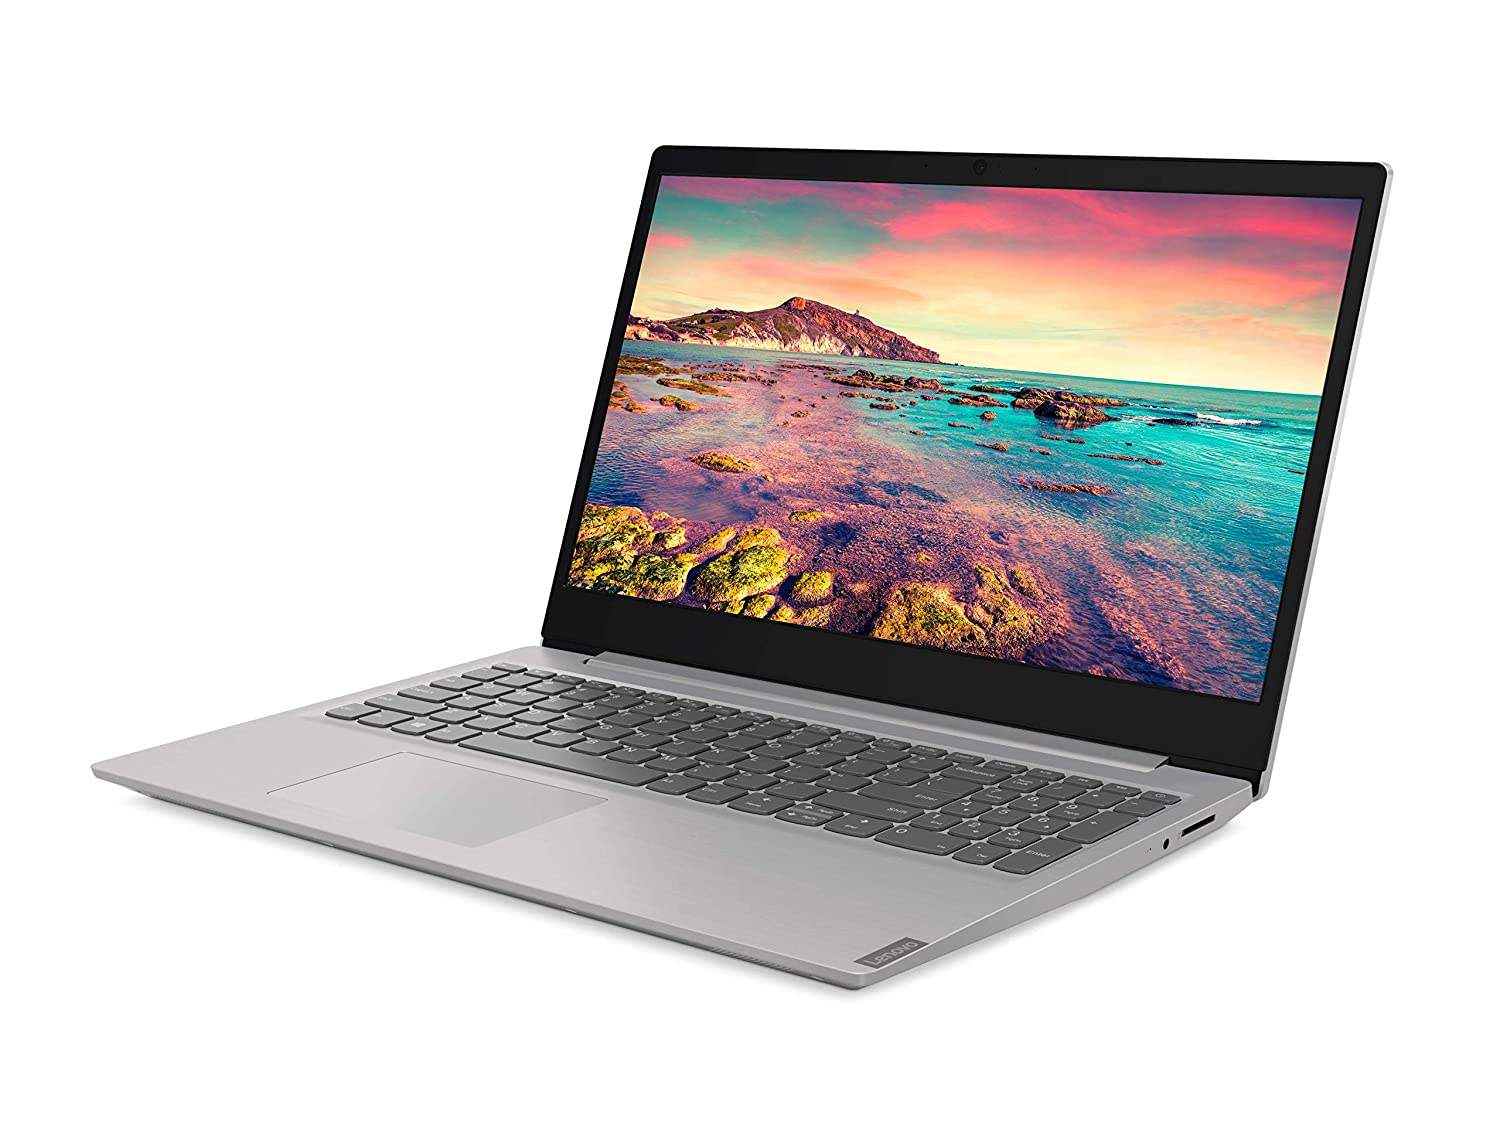 Lenovo Ideapad S145 7th Generation Intel Core I3 15.6 FHD Thin And Light Laptop (4GB/1 TB HDD + 256 GB SSD/Windows 10/Office 2019/Grey) 81VD008SIN [B086955PCC]